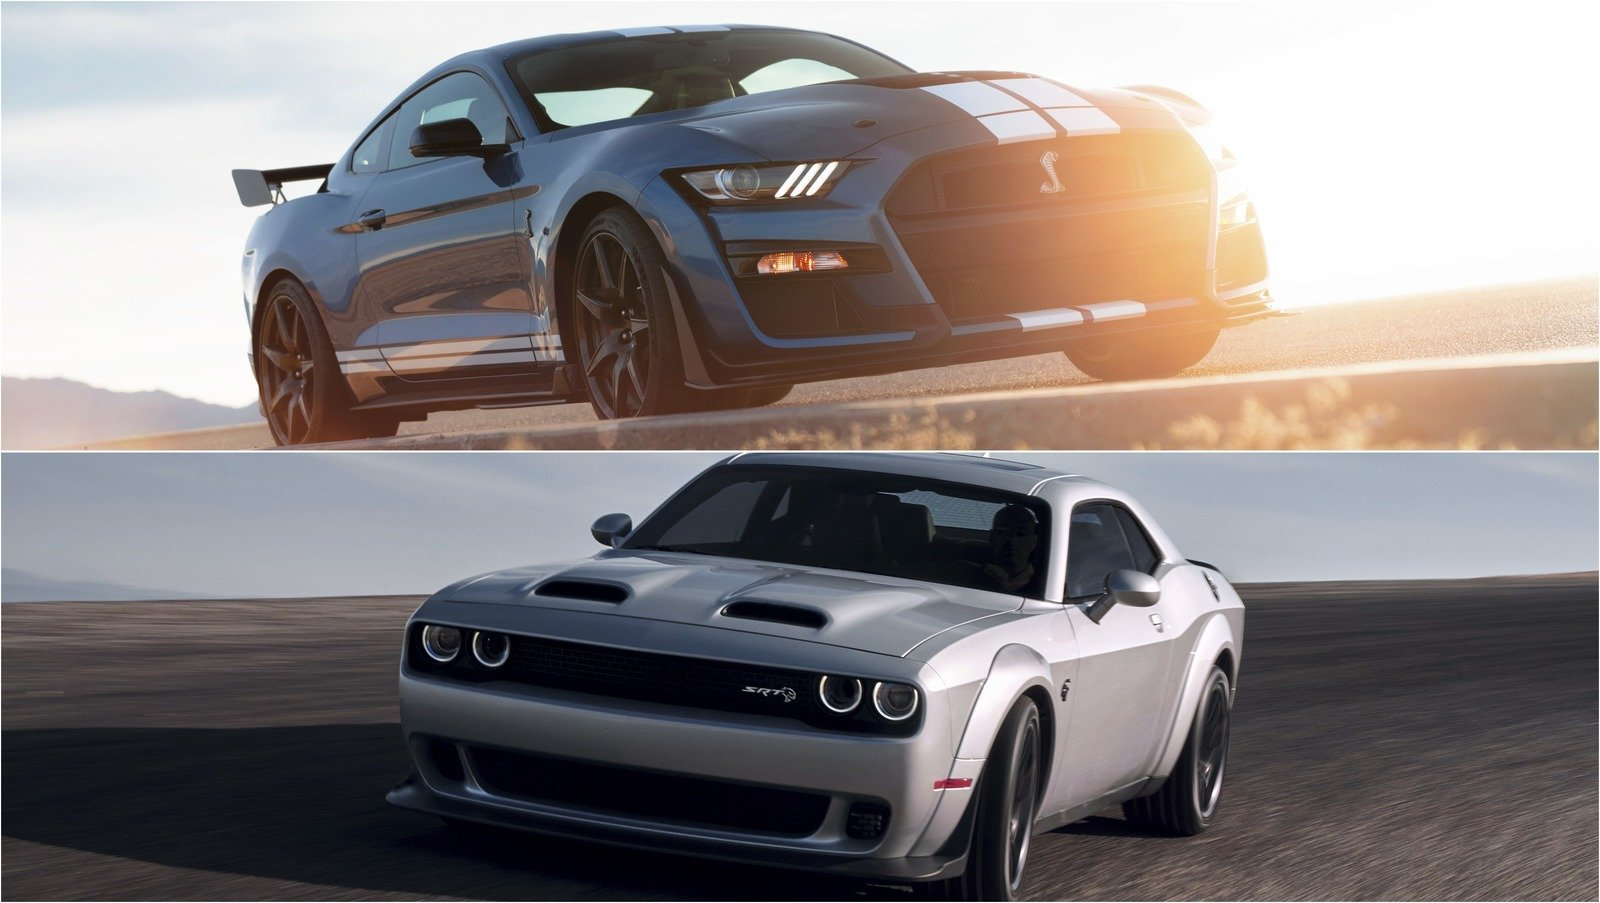 2020 Ford Mustang Shelby GT500 Vs 2019 Dodge Challenger SRT Redeye | Top Speed